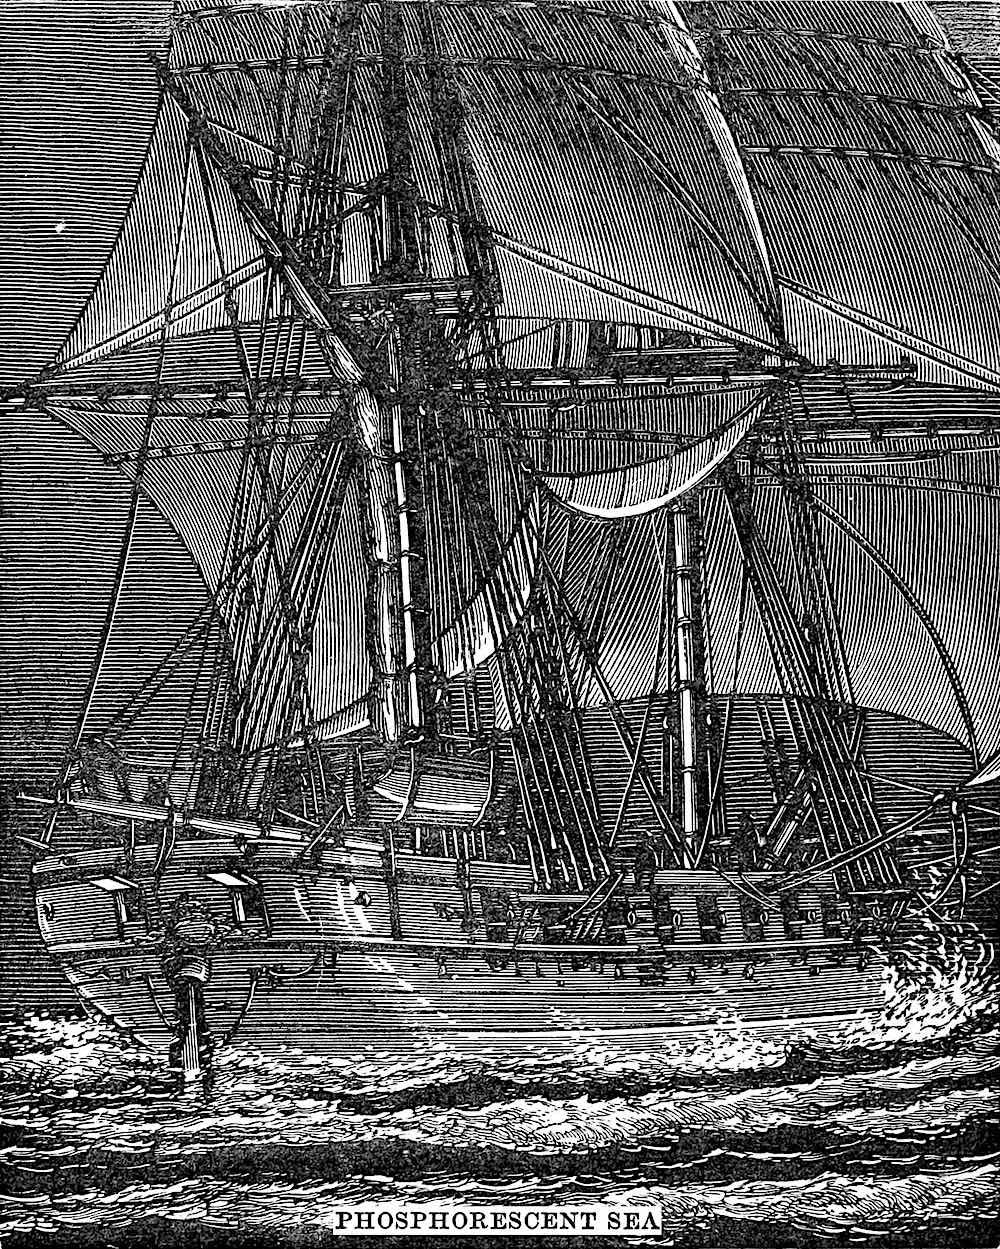 an illustration of a ship in a Phosphorescent Sea at night from an 1876 science book